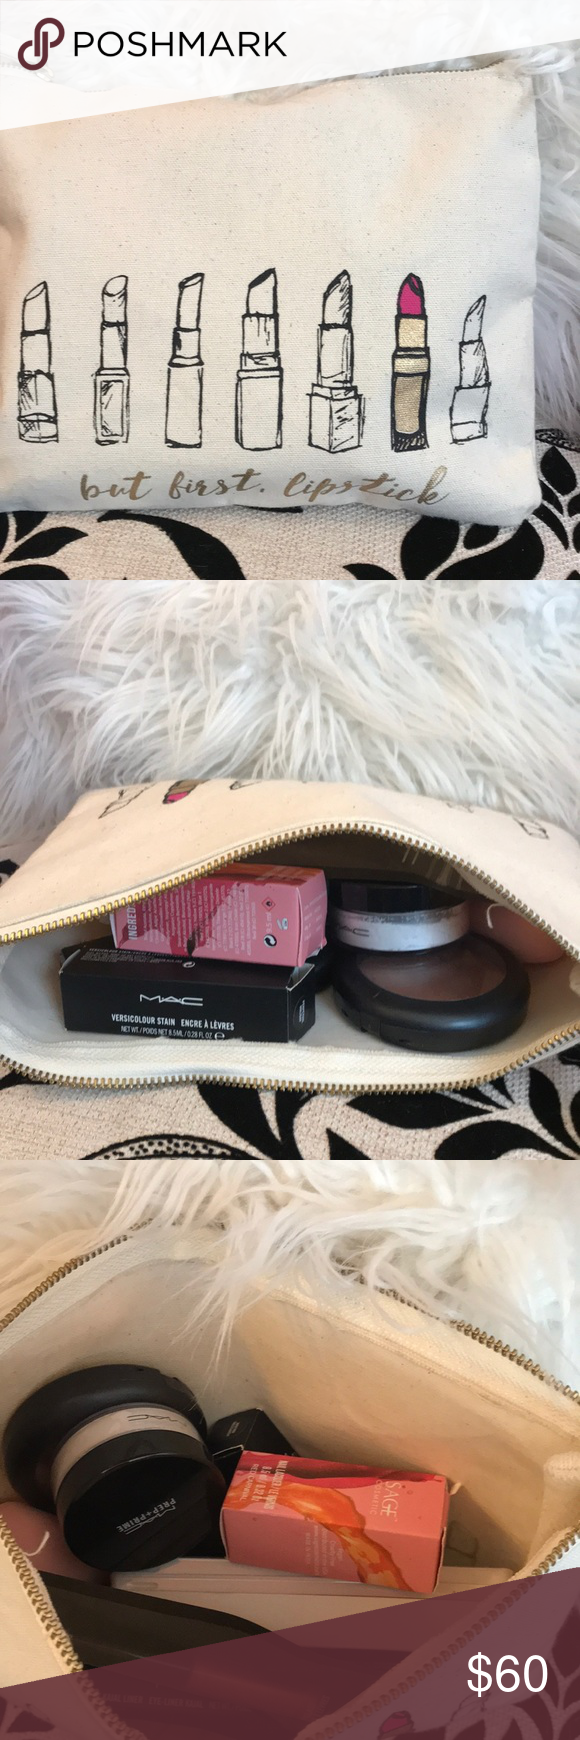 Large Makeup Mystery Bag Mystery Bags! All bags have name